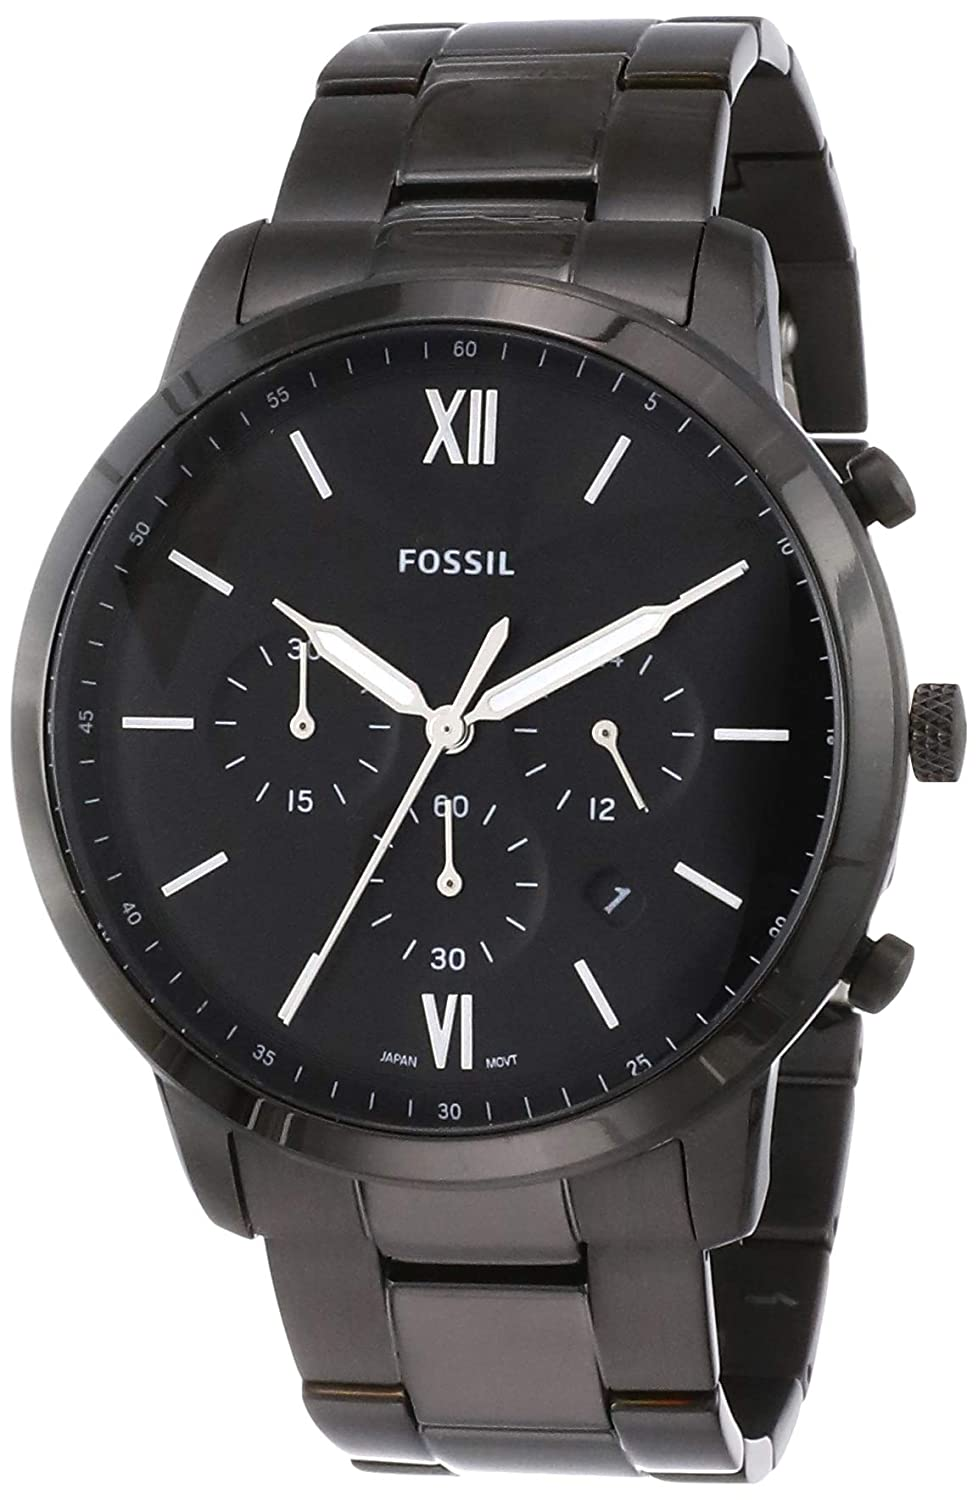 Fossil Neutra Chrono Analog Black Dial Men's Watch - FS5474